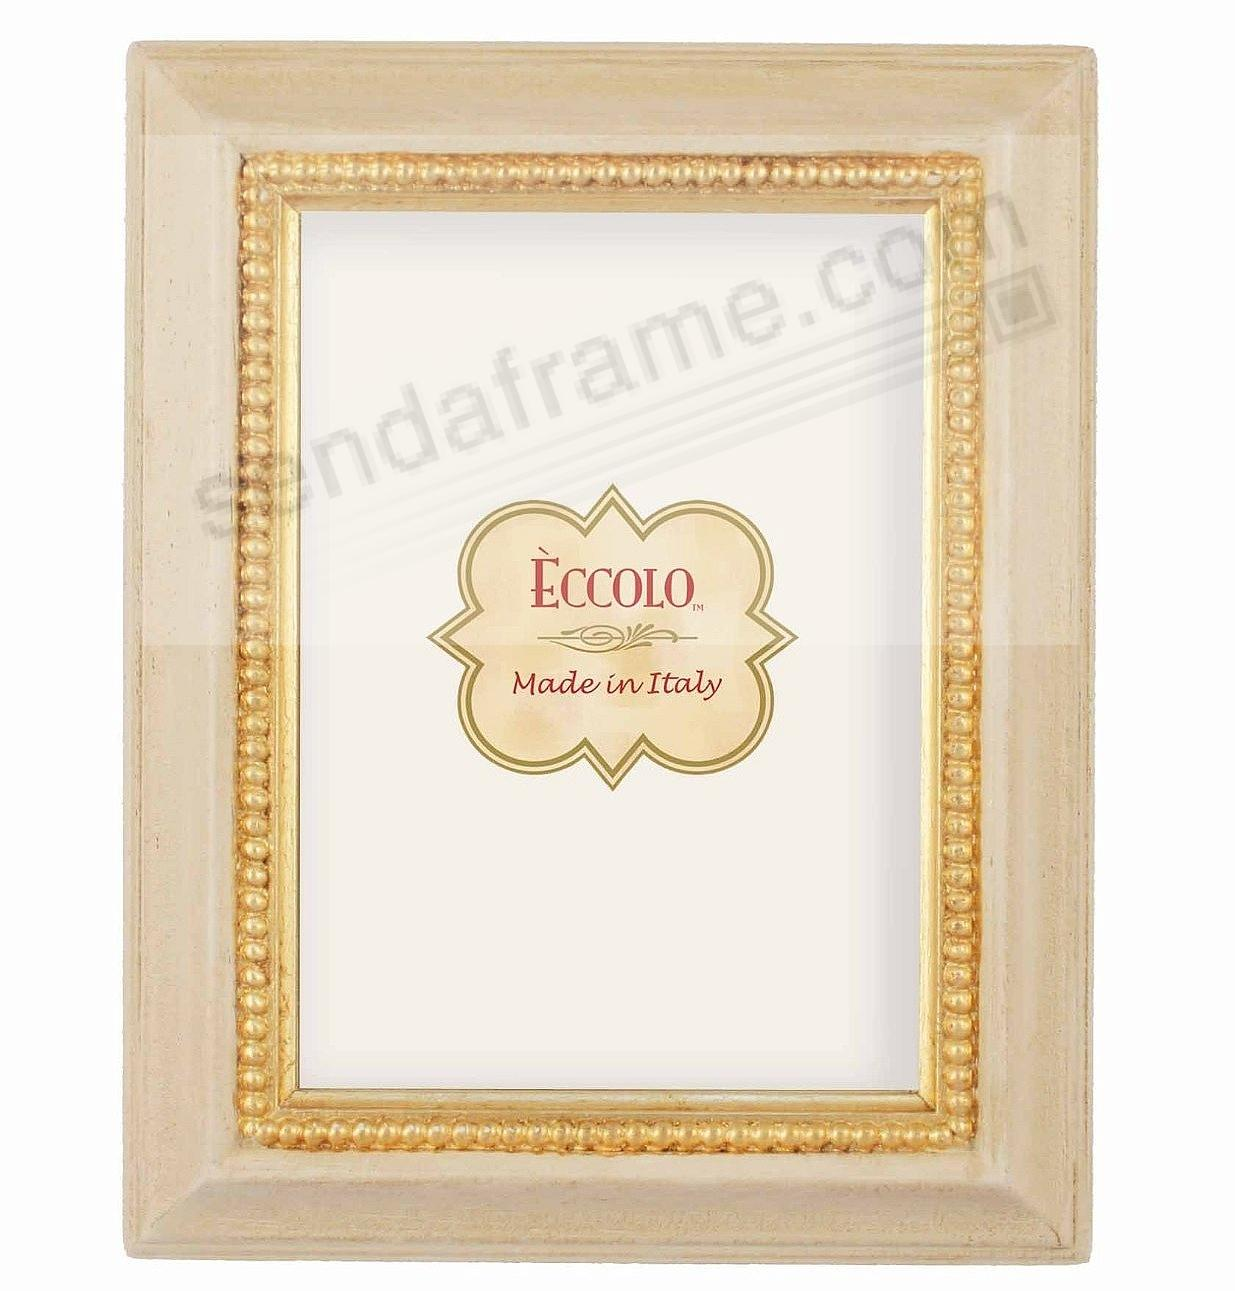 ANTIQUE IVORY and GOLD BEAD Carved Wood 4x6 frame by Eccolo ...